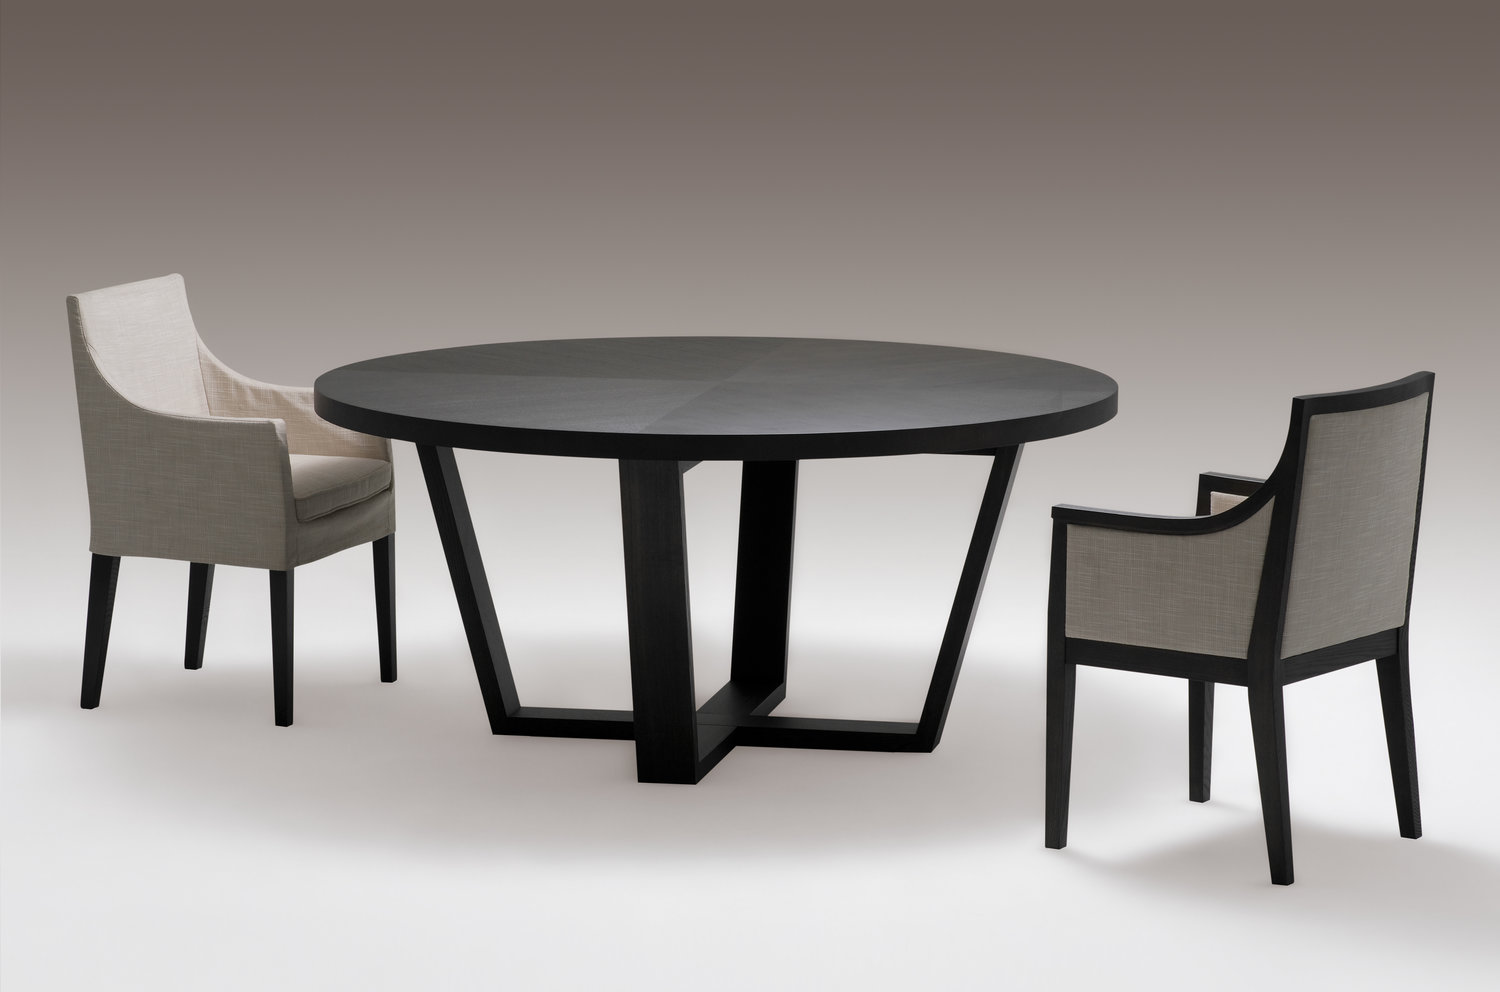 Sideboard Domo Design : Walsh nyc domo dining table